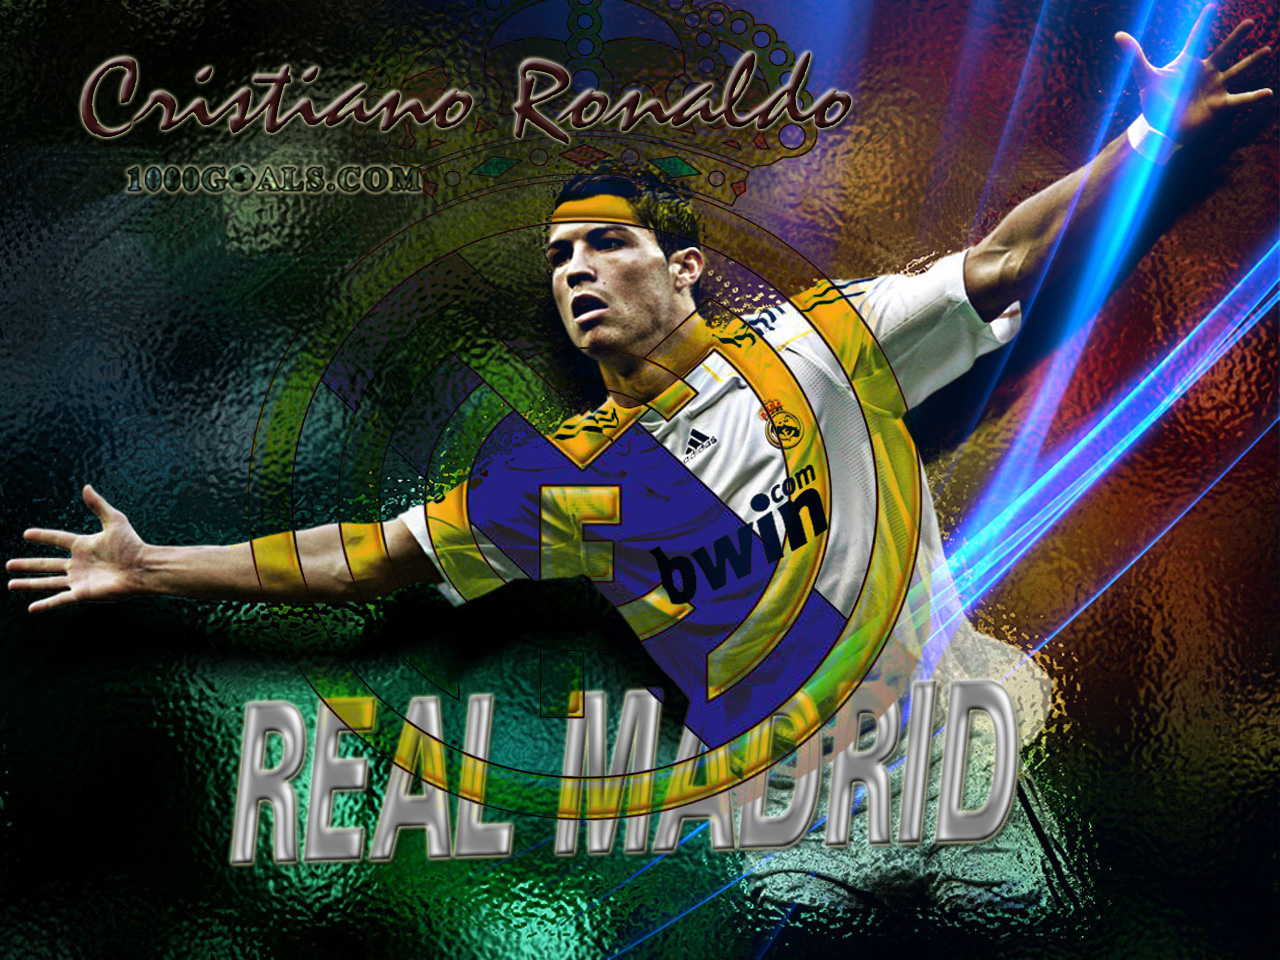 Cristiano Ronaldo Real Madrid Wallpaper For Desktop